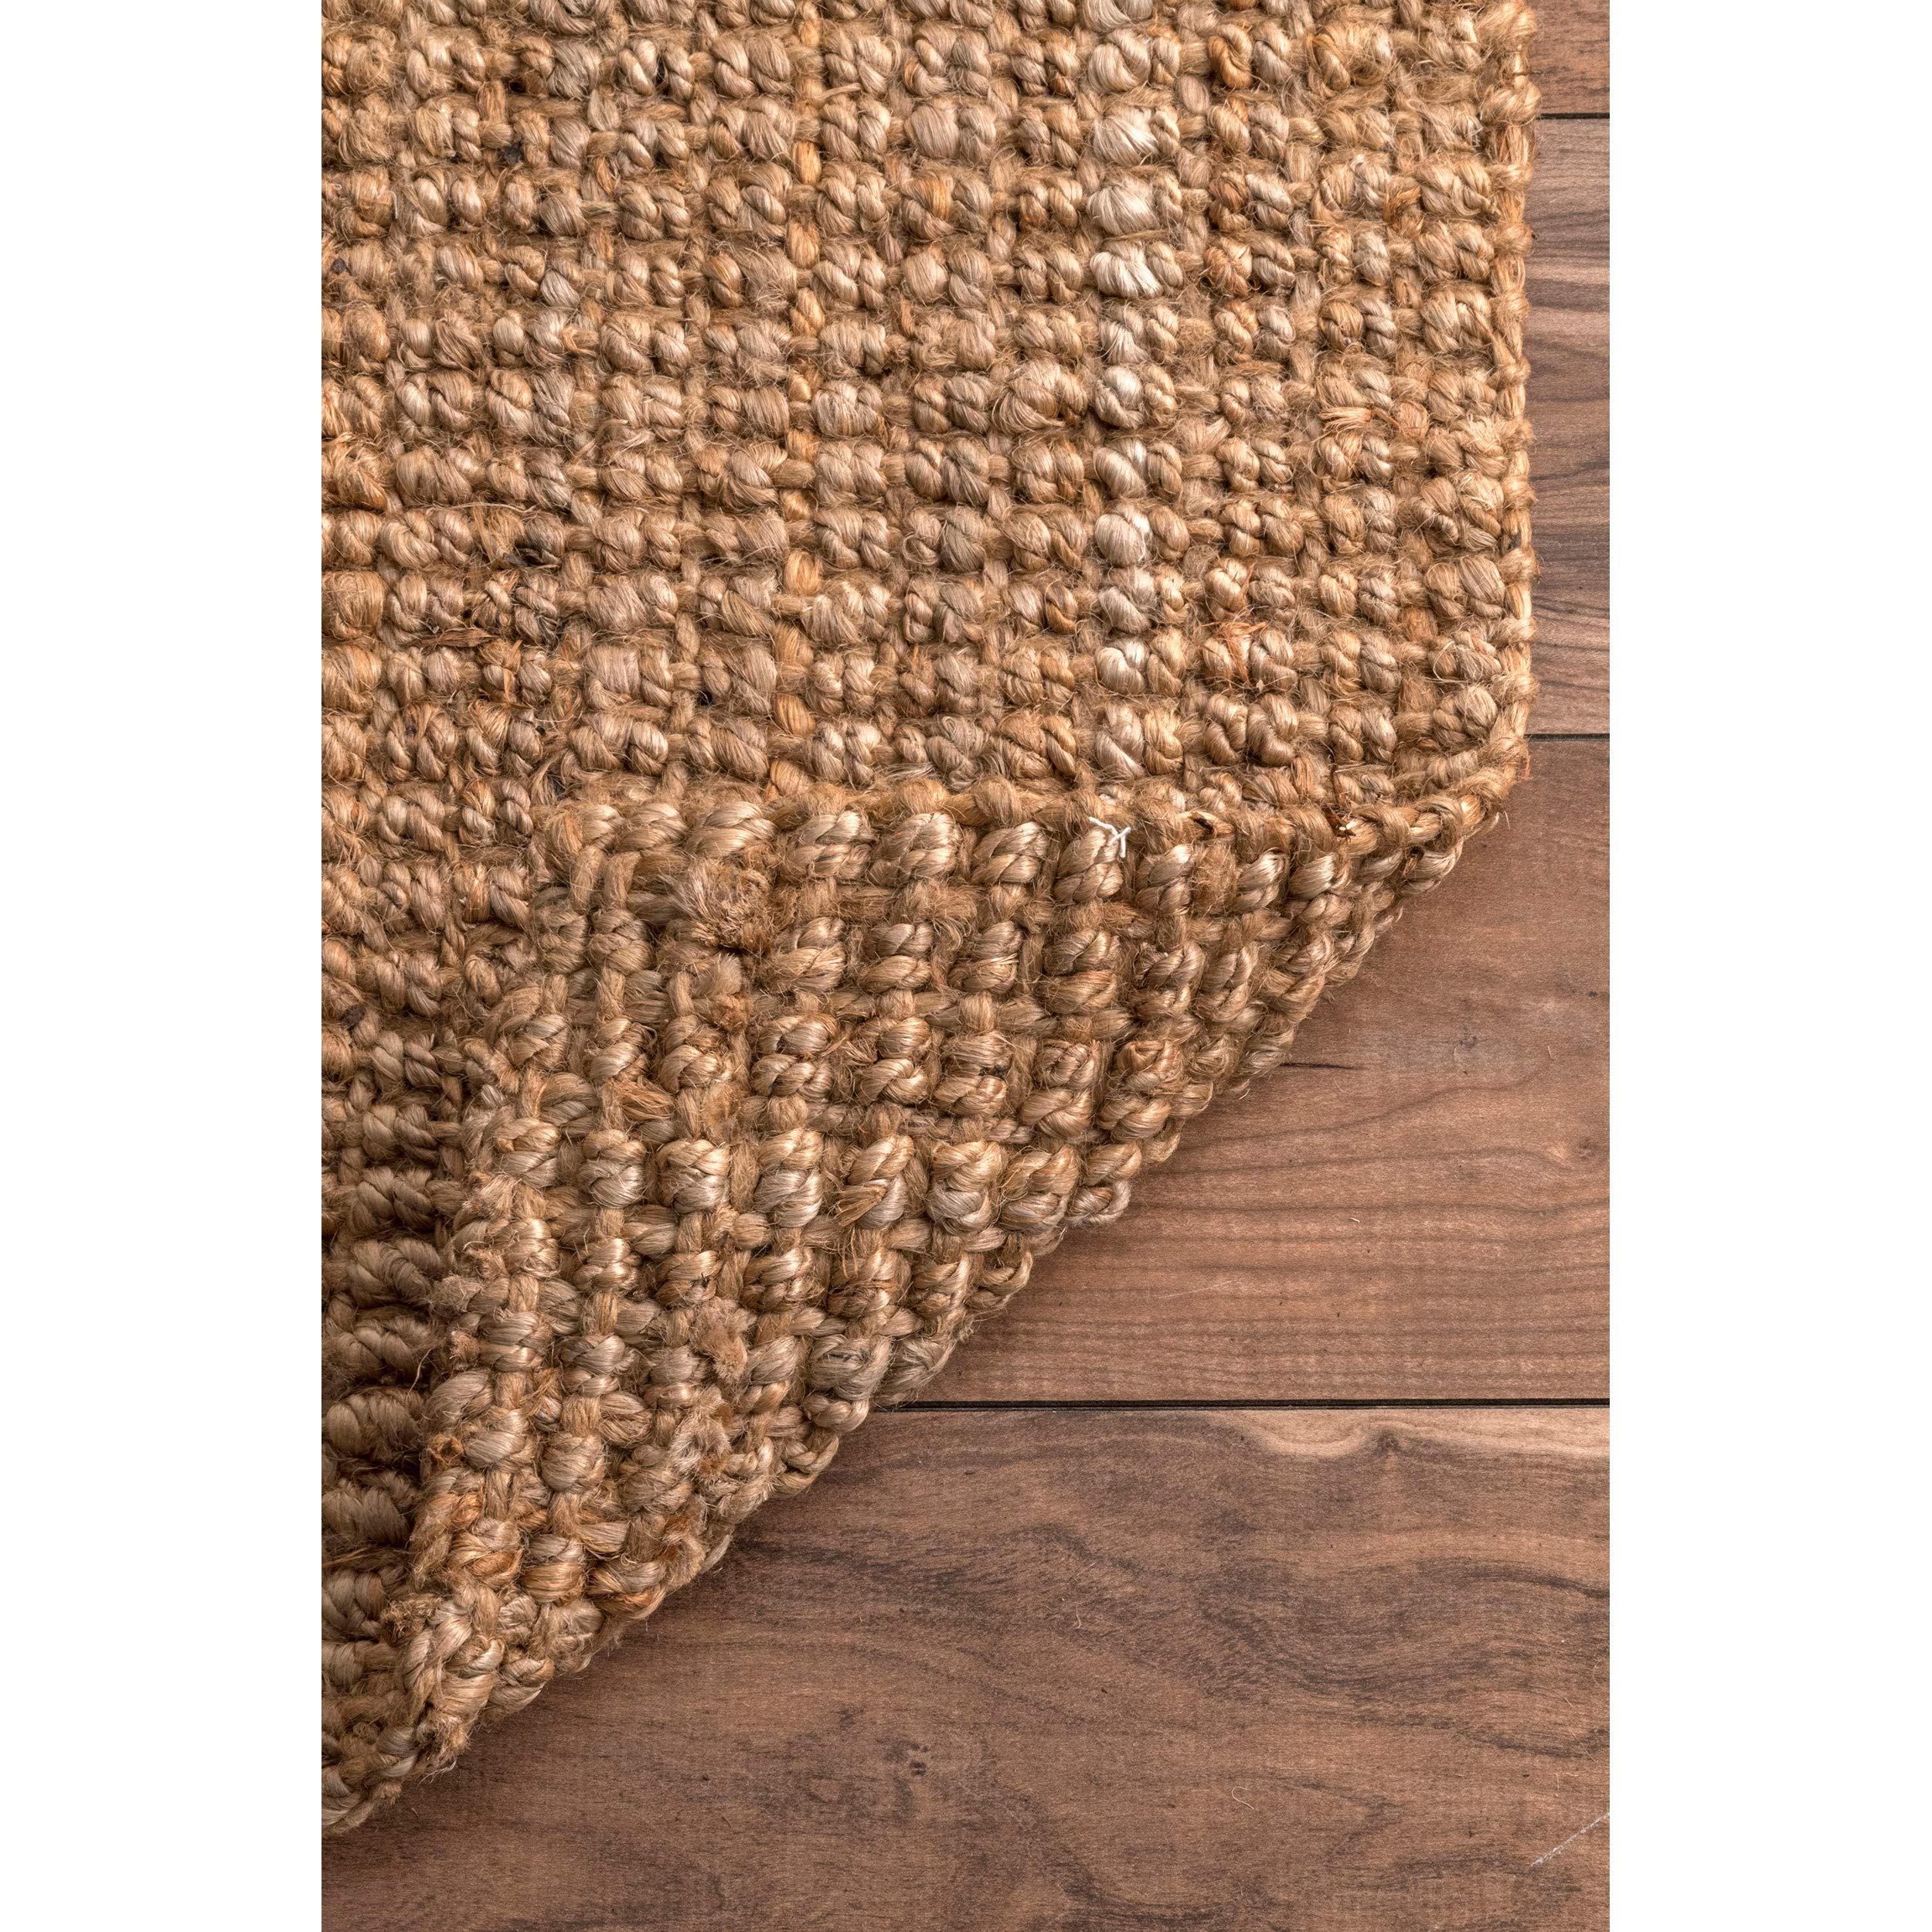 nuLOOM Handwoven Jute Ribbed Solid Area Rugs, 4' x 6', Natural by nuLOOM (Image #4)